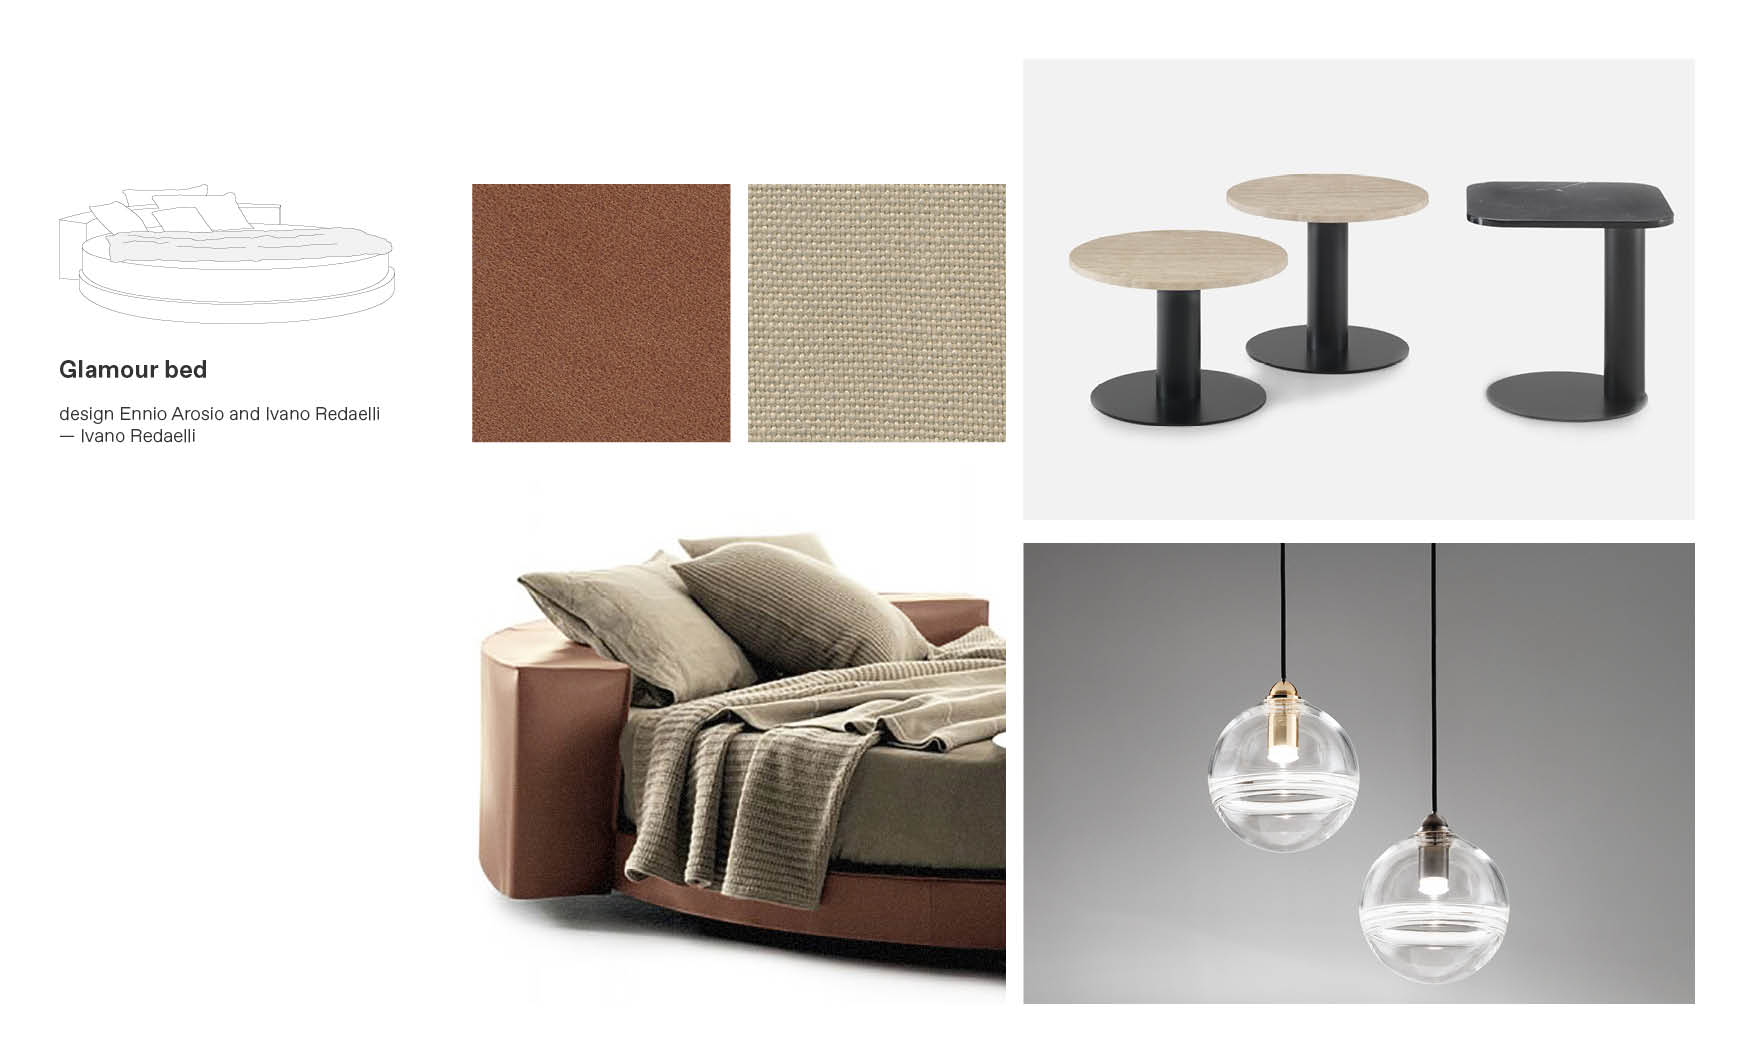 Ivano Redaelli beds and Glamour moodboard composition made by Esperiri Team